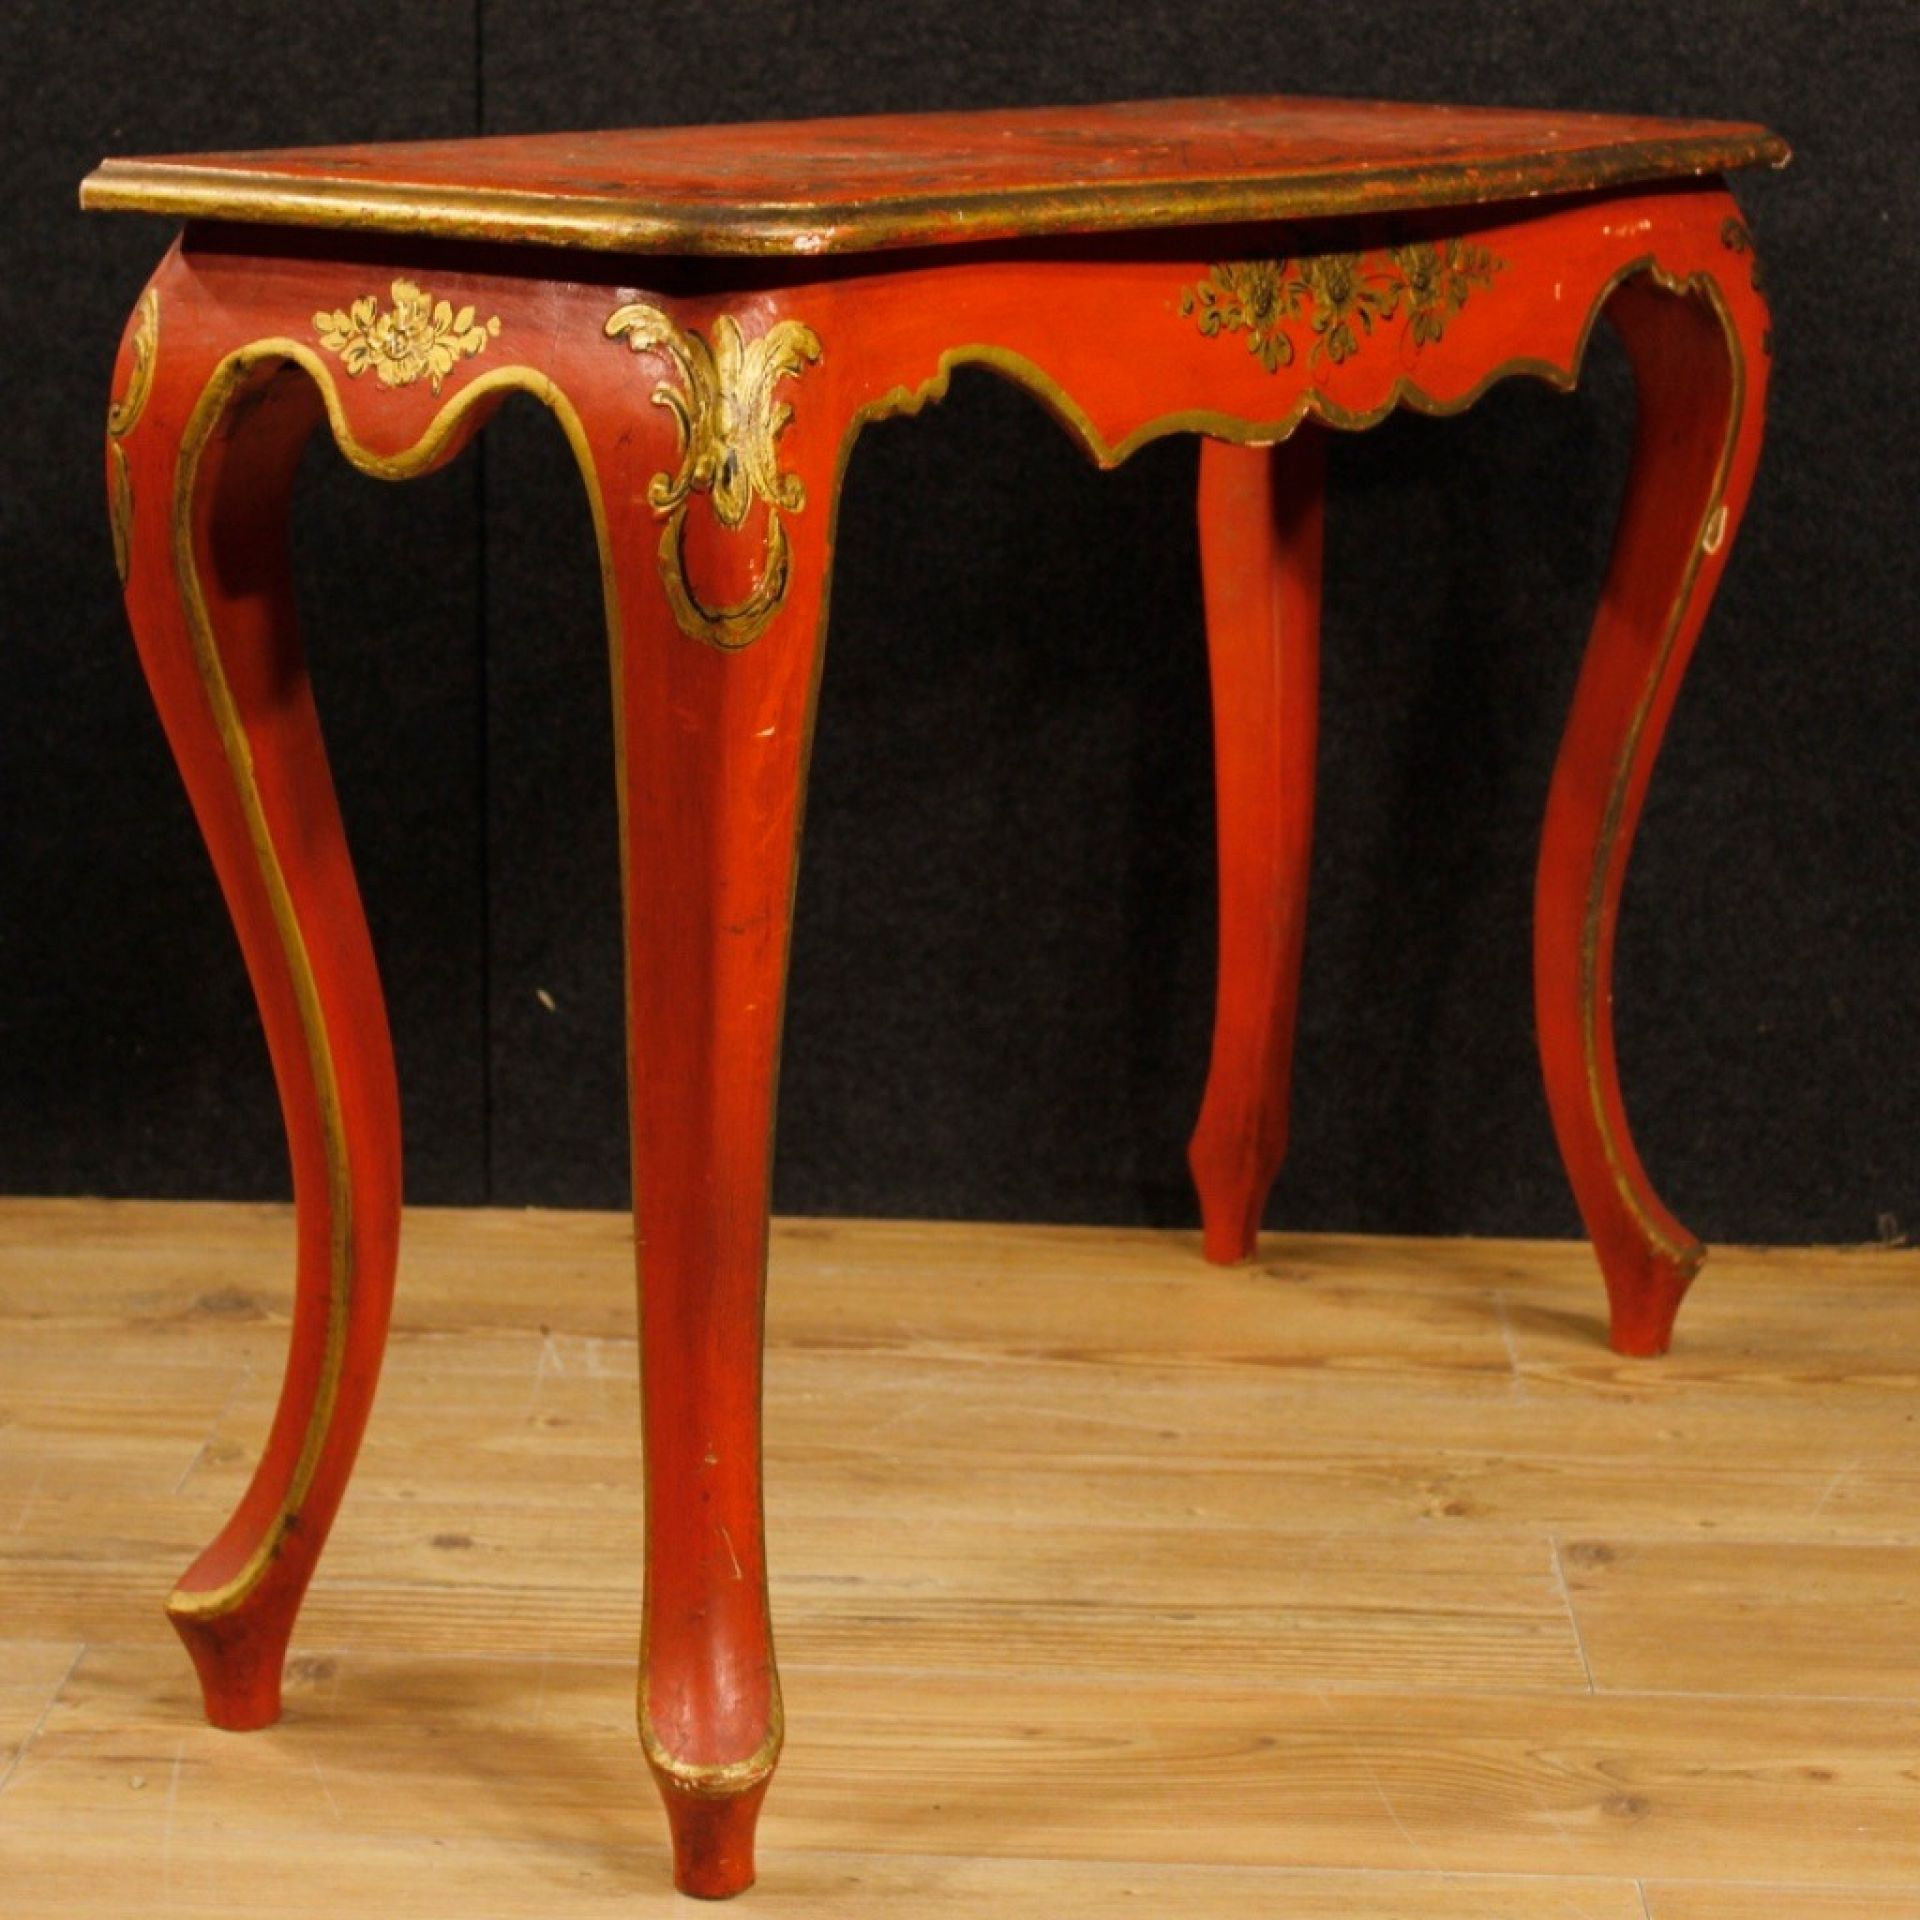 20th Century Orange And Golden Lacquered Wooden Chinoiserie Spanish Console